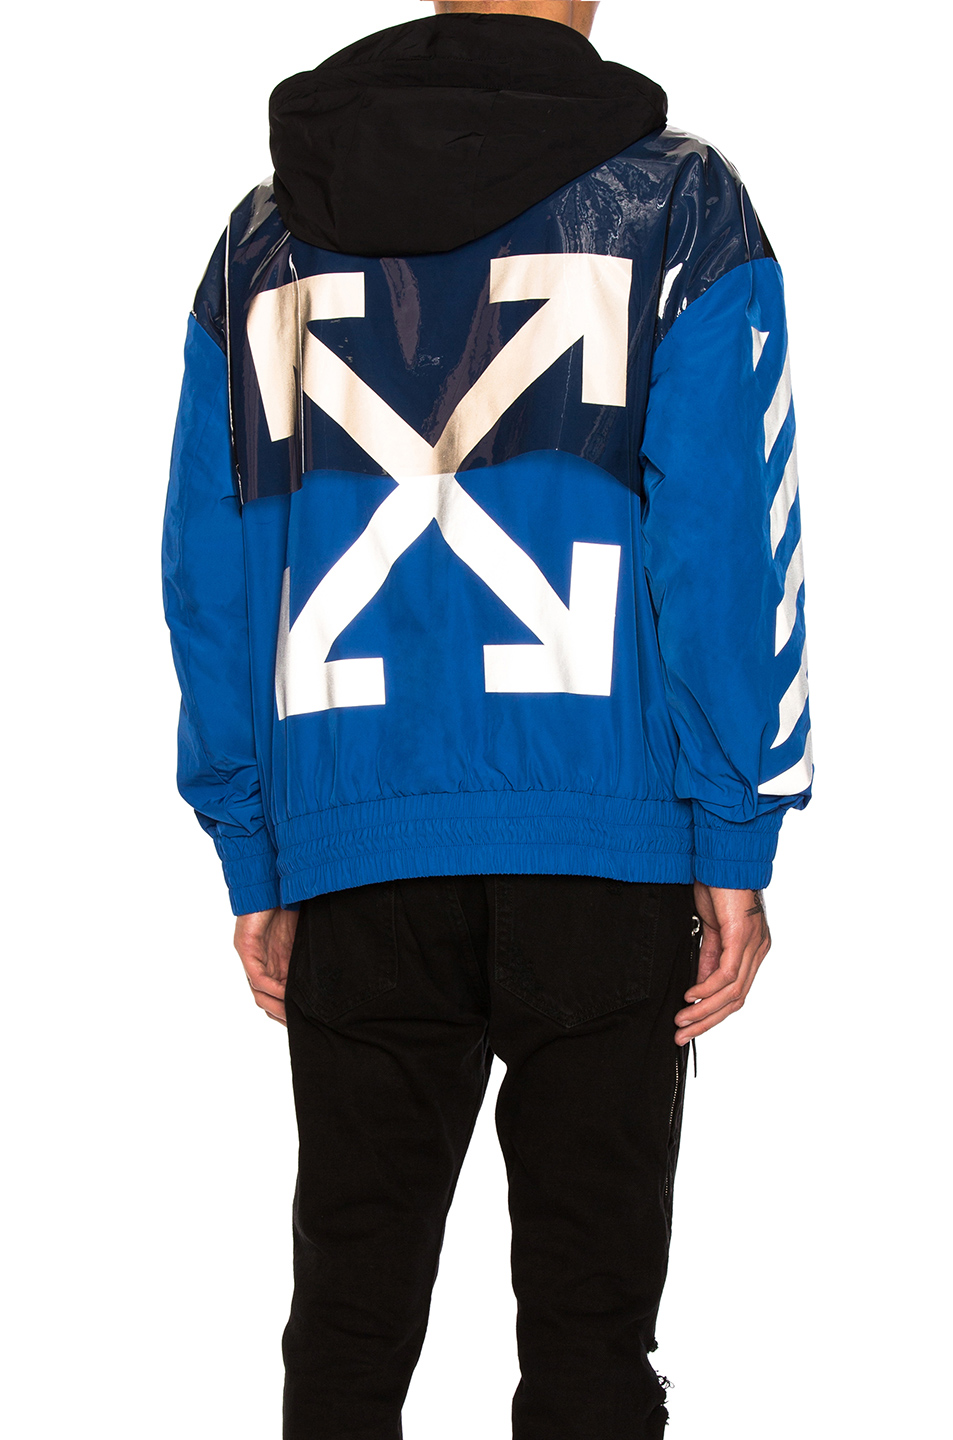 Moncler x Off White Jacket in Black,Blue